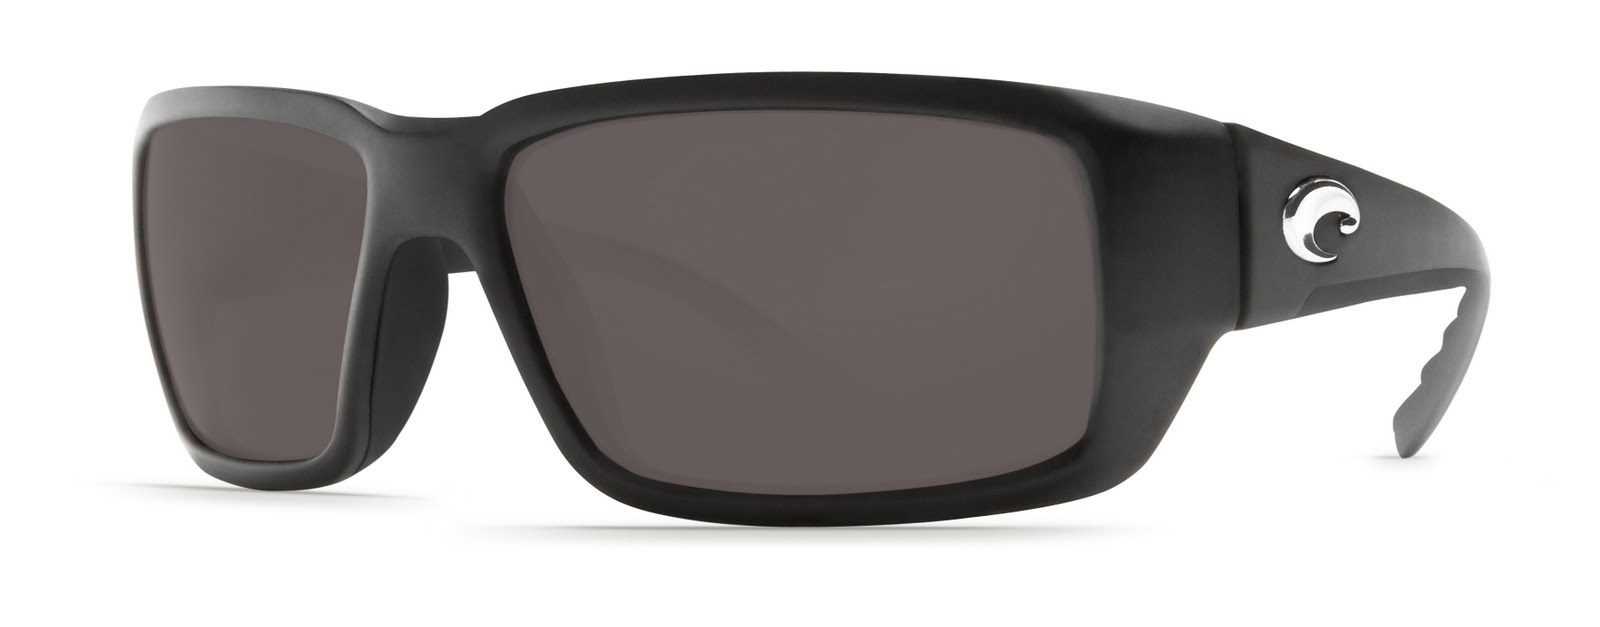 dbcb6349181 Lowcountry outdoors  Costa offers new Fantail frames for fishermen